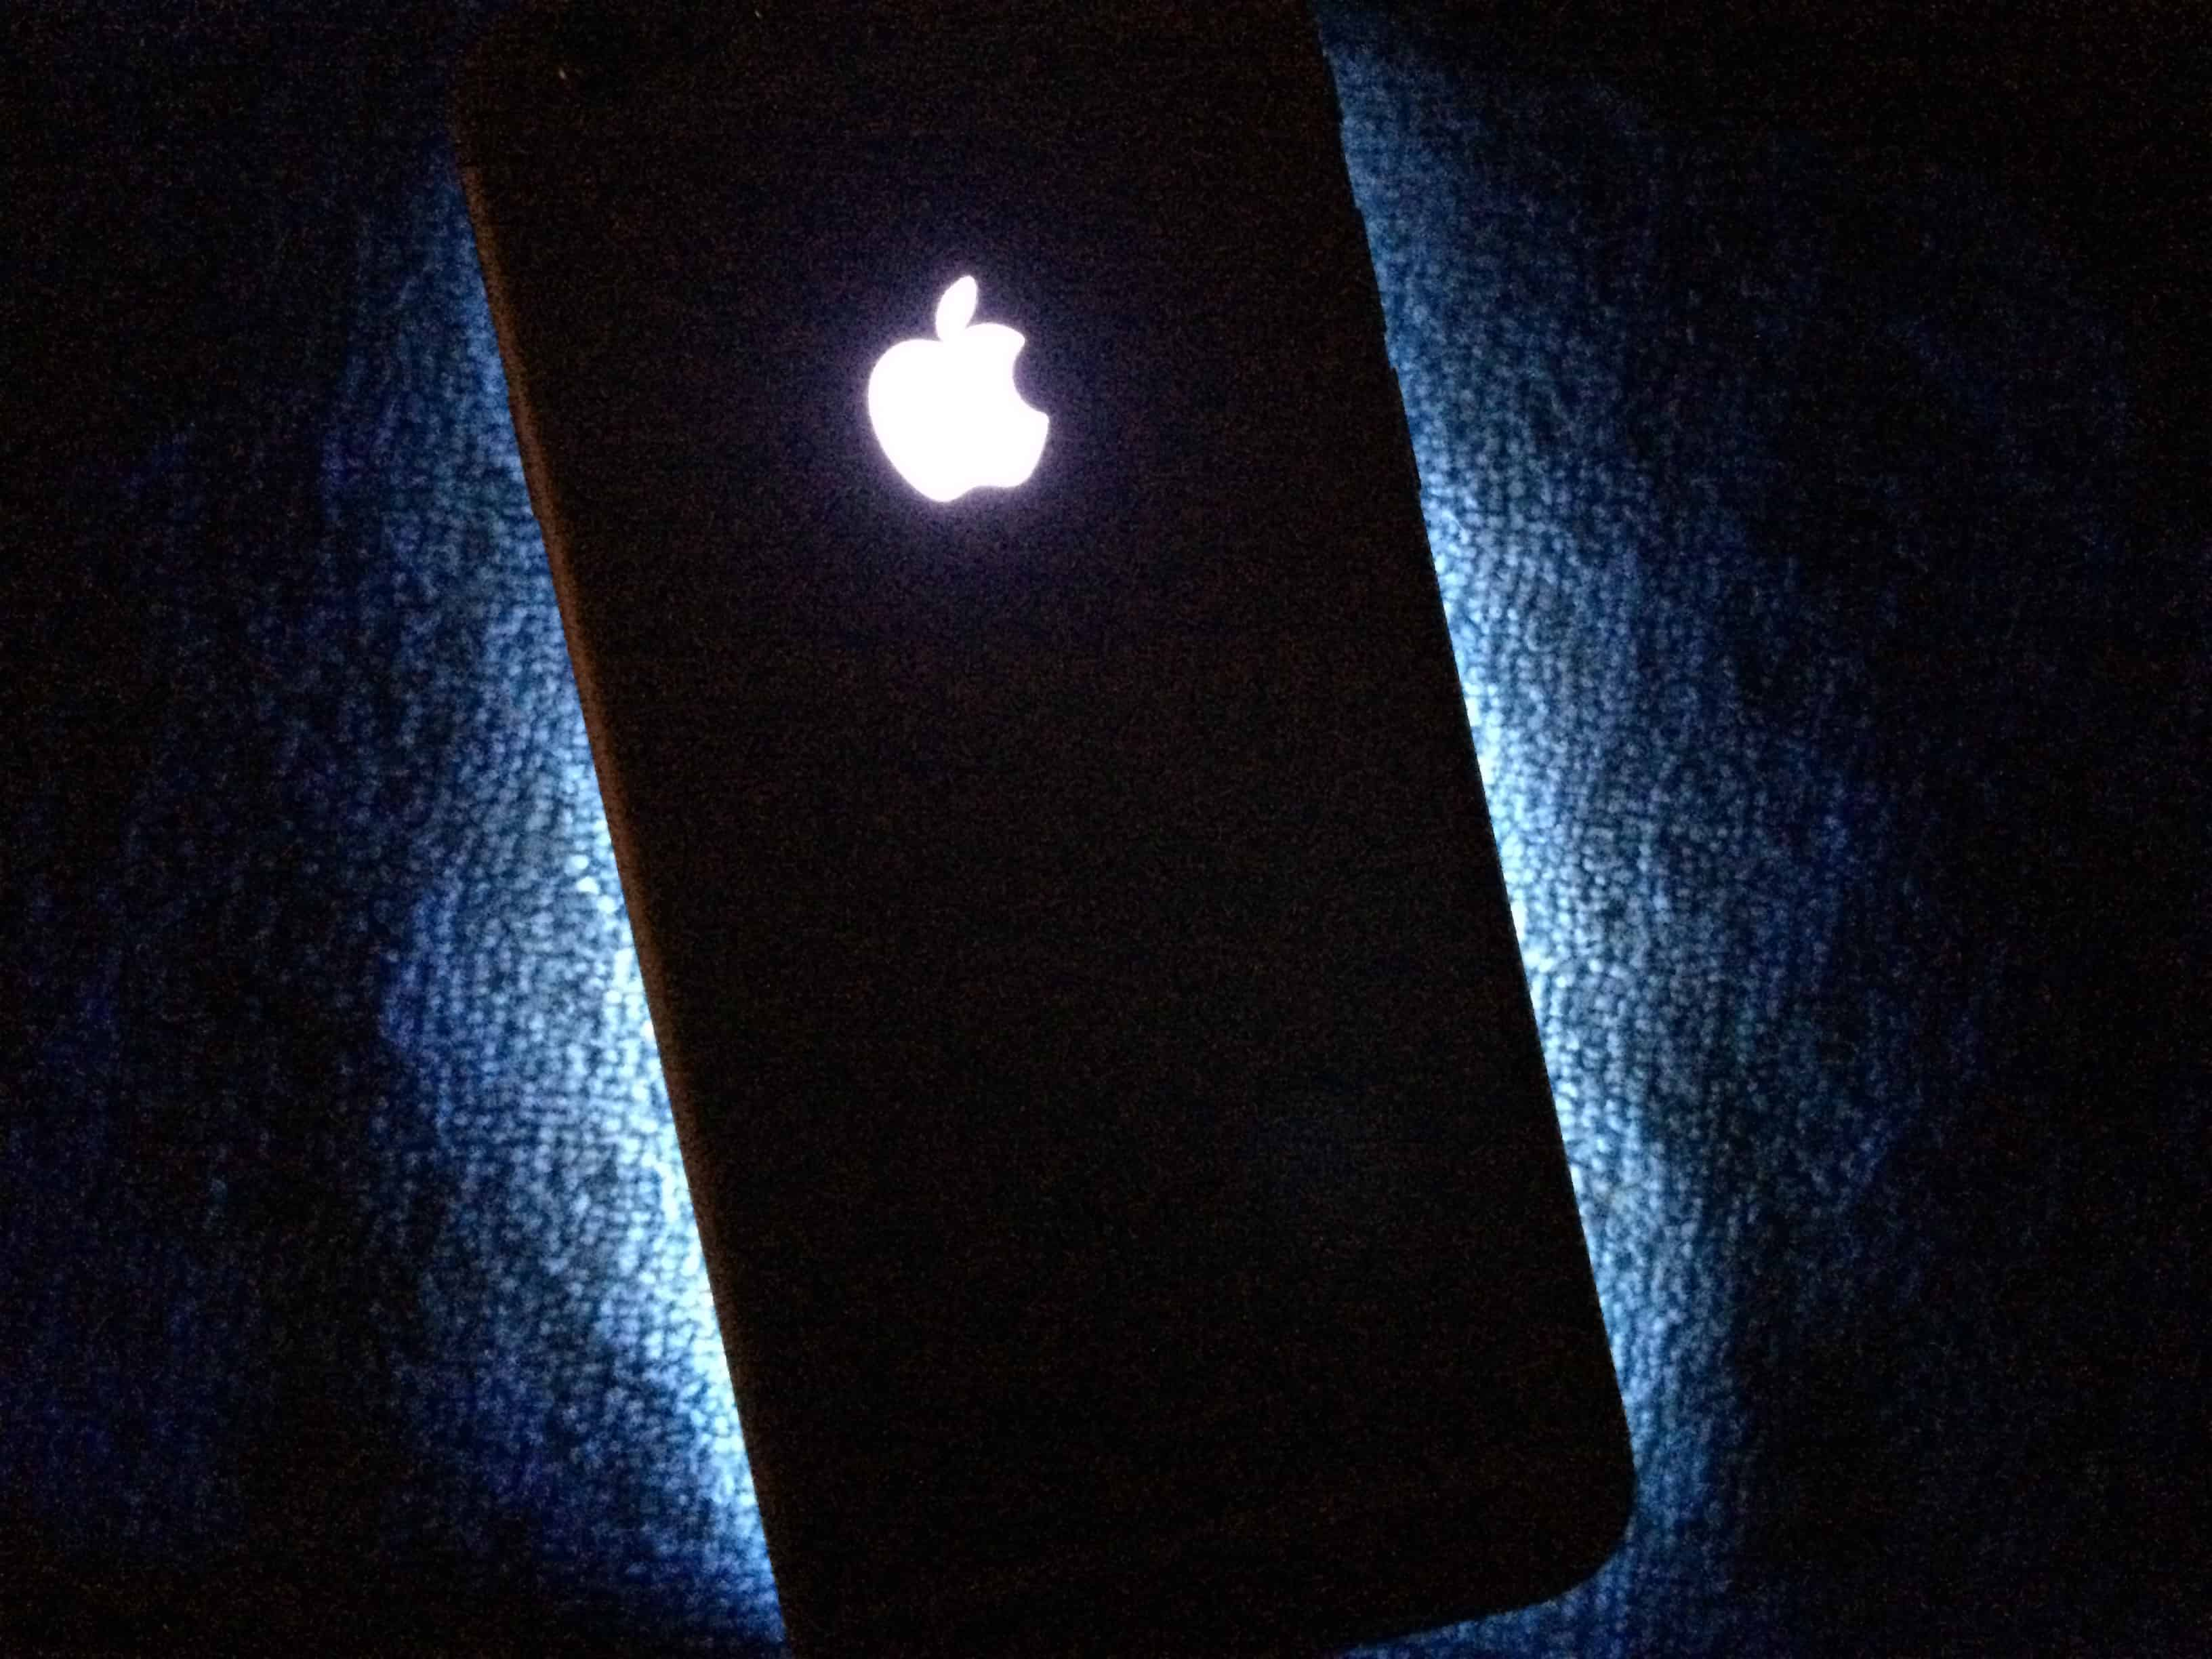 iPhones could have glowing Apple logo as notification light.